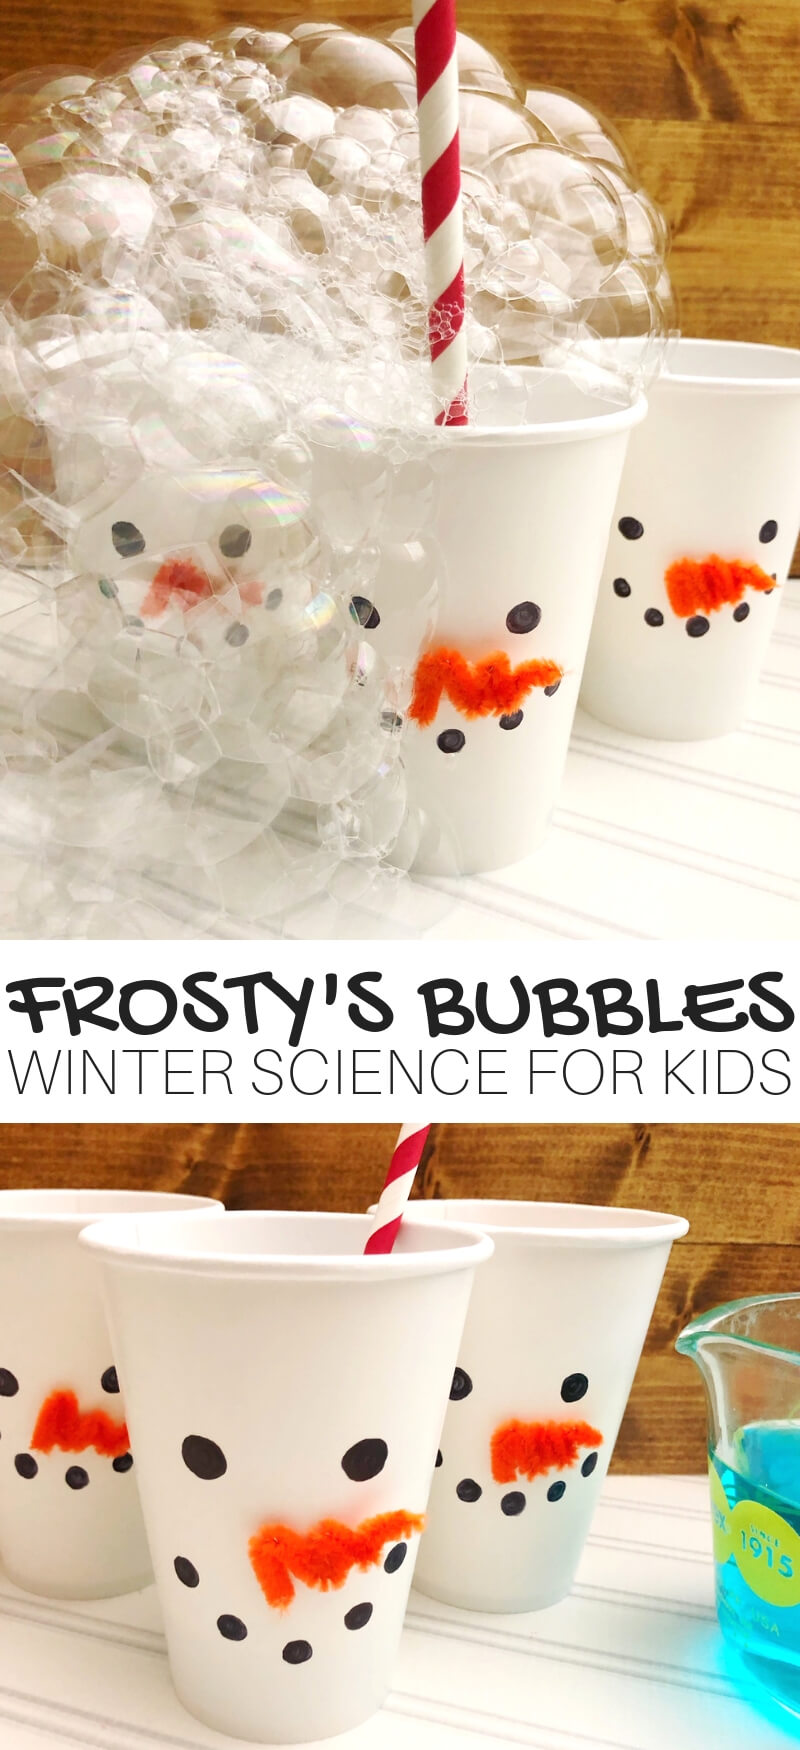 Winter Bubble Science and Winter STEM with bubbles. Easy snowman theme science and STEM activity for winter.